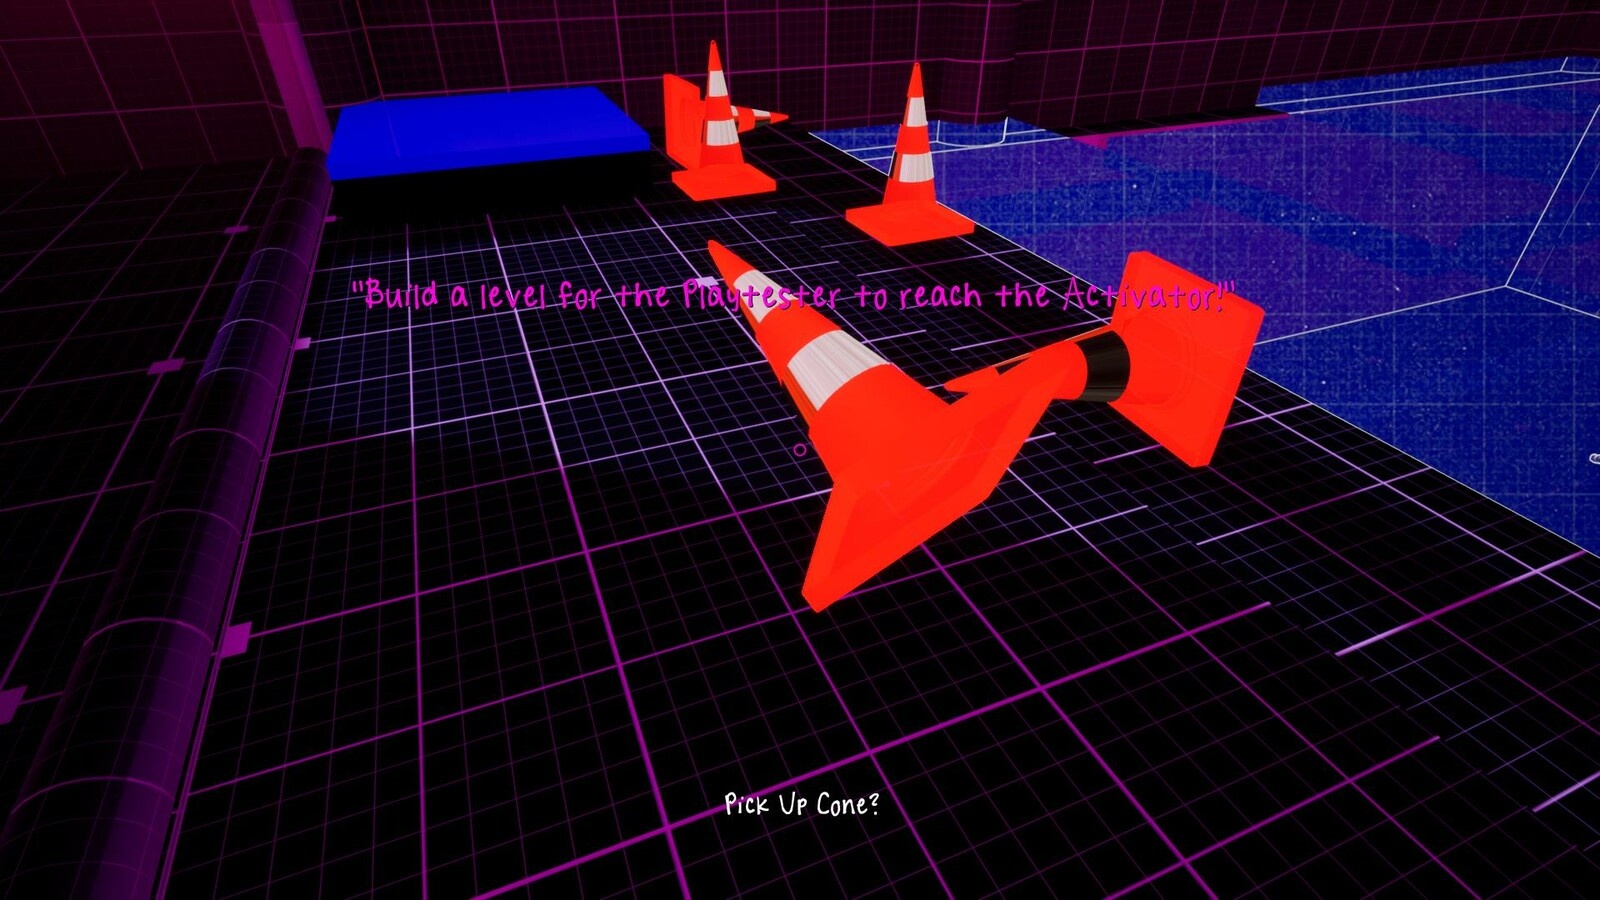 In the Playtesting area, the cones can be used to guide the AI to the write path by blocking the wrong path.